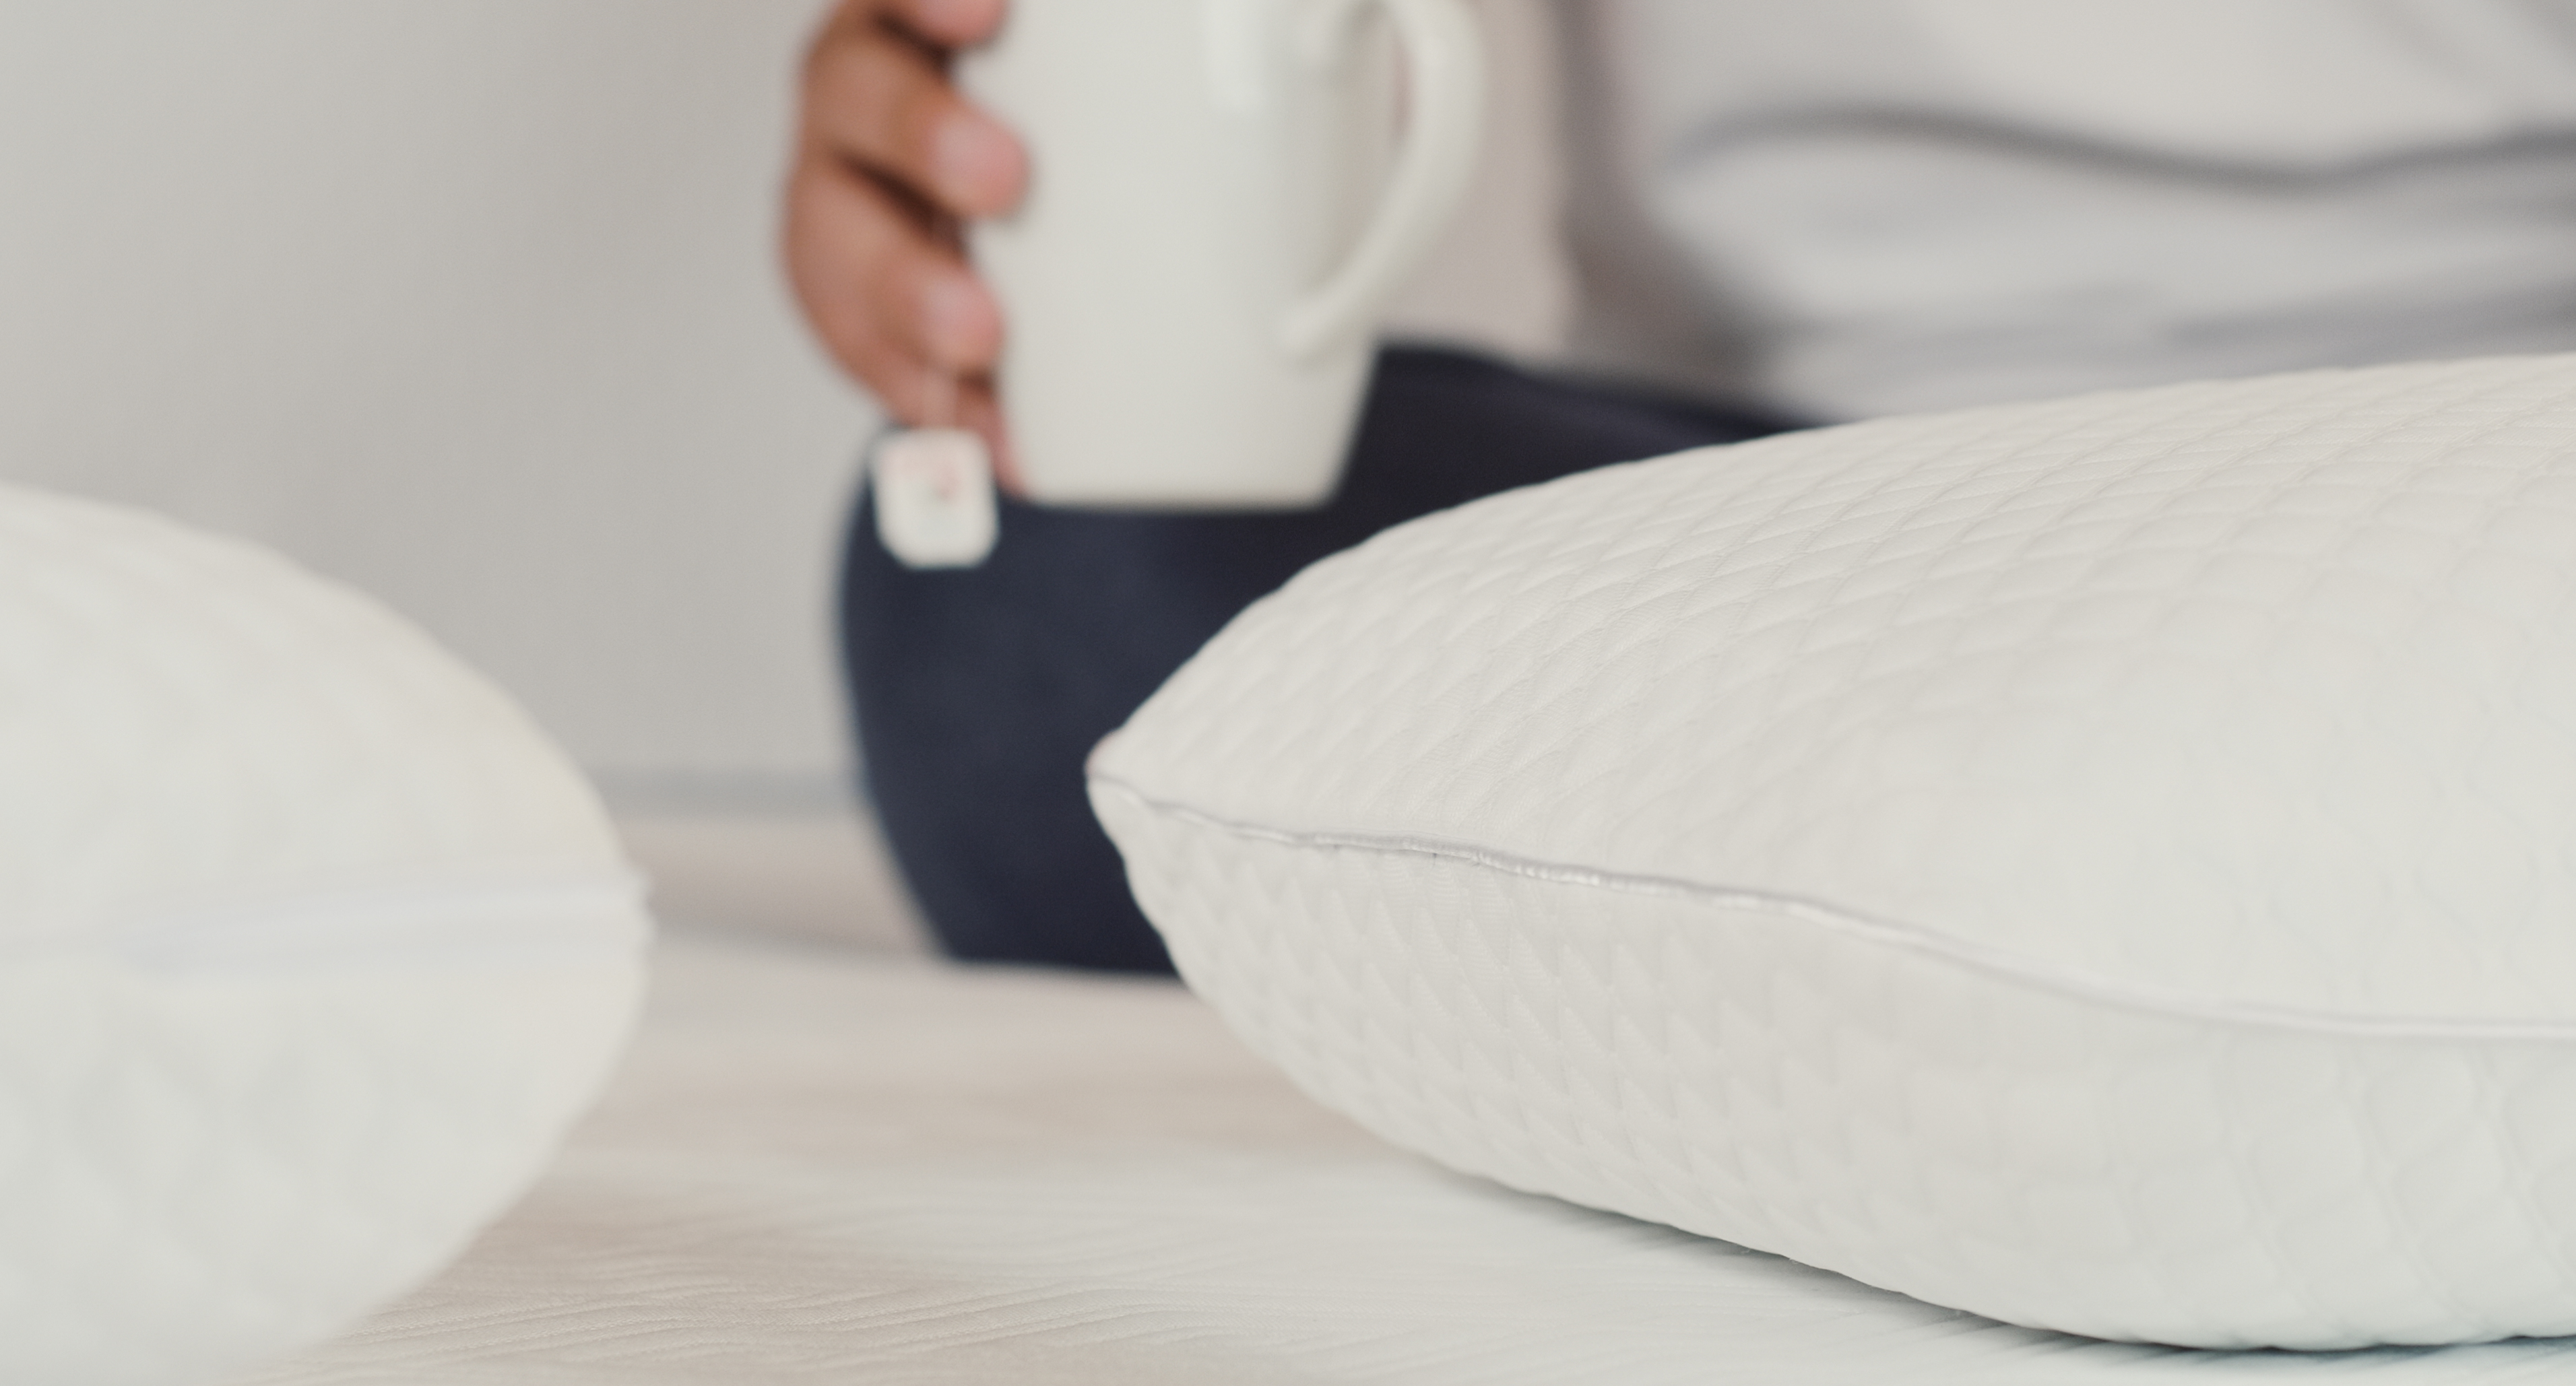 tea and pillows on mattress